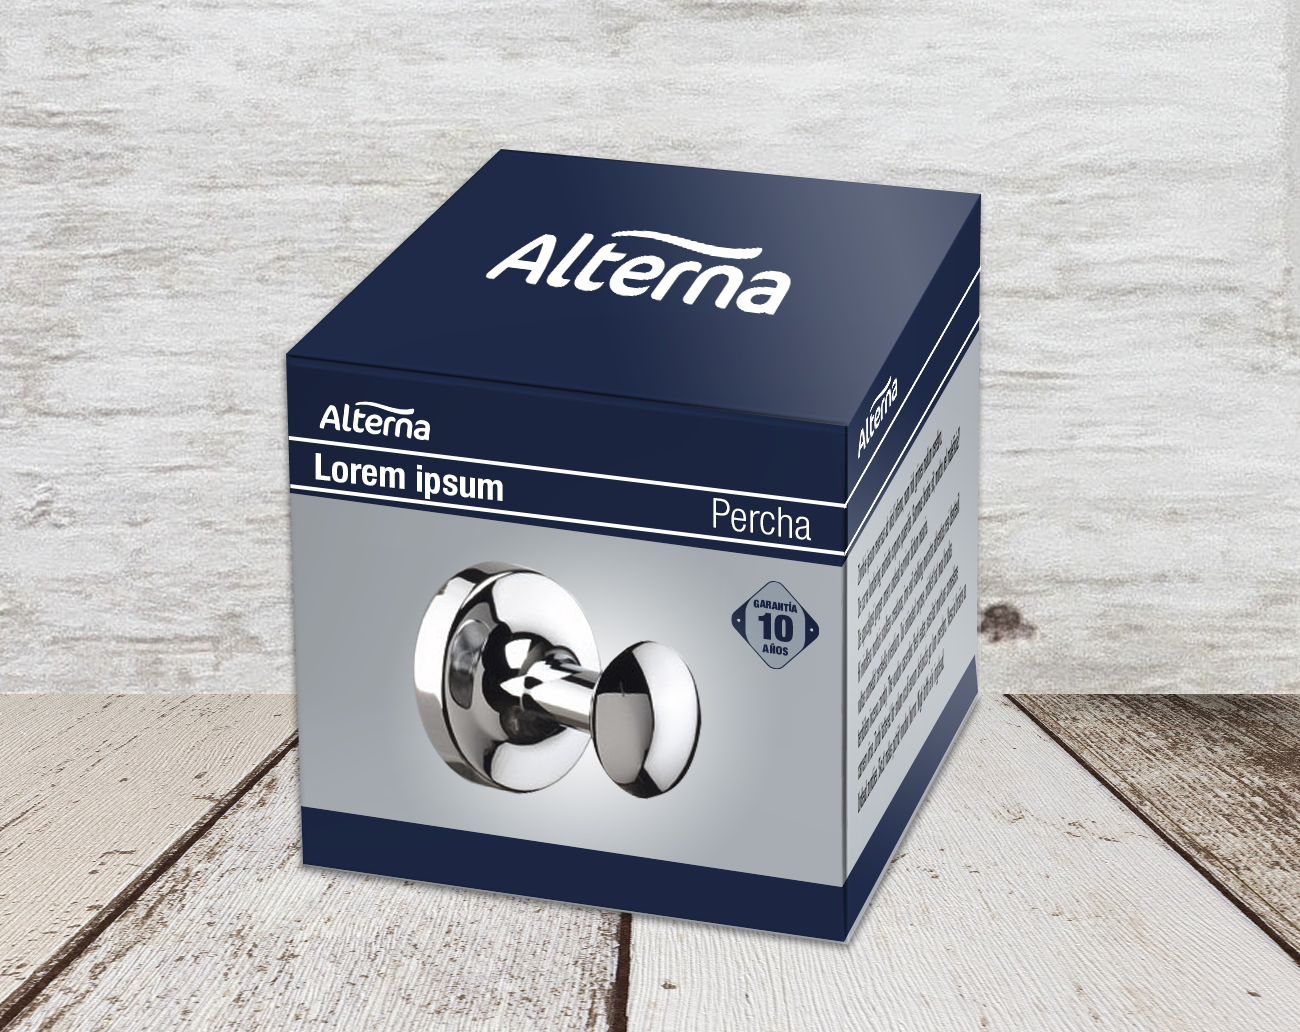 Alterna Accessories Packaging